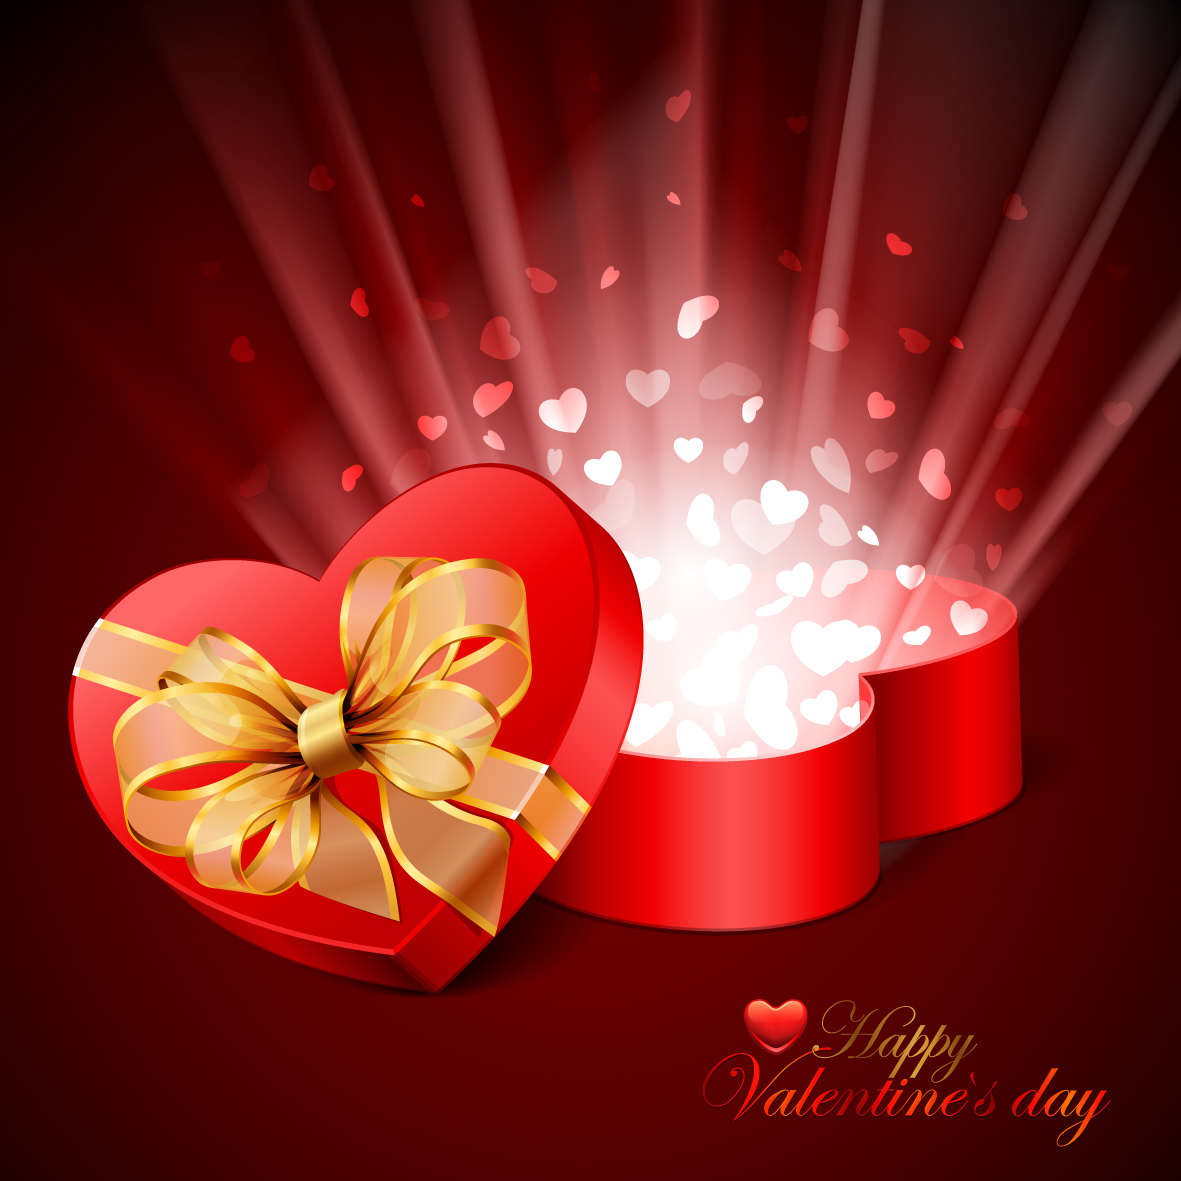 happy valentine day wallpapers happy valentine day wallpaper 1181x1181